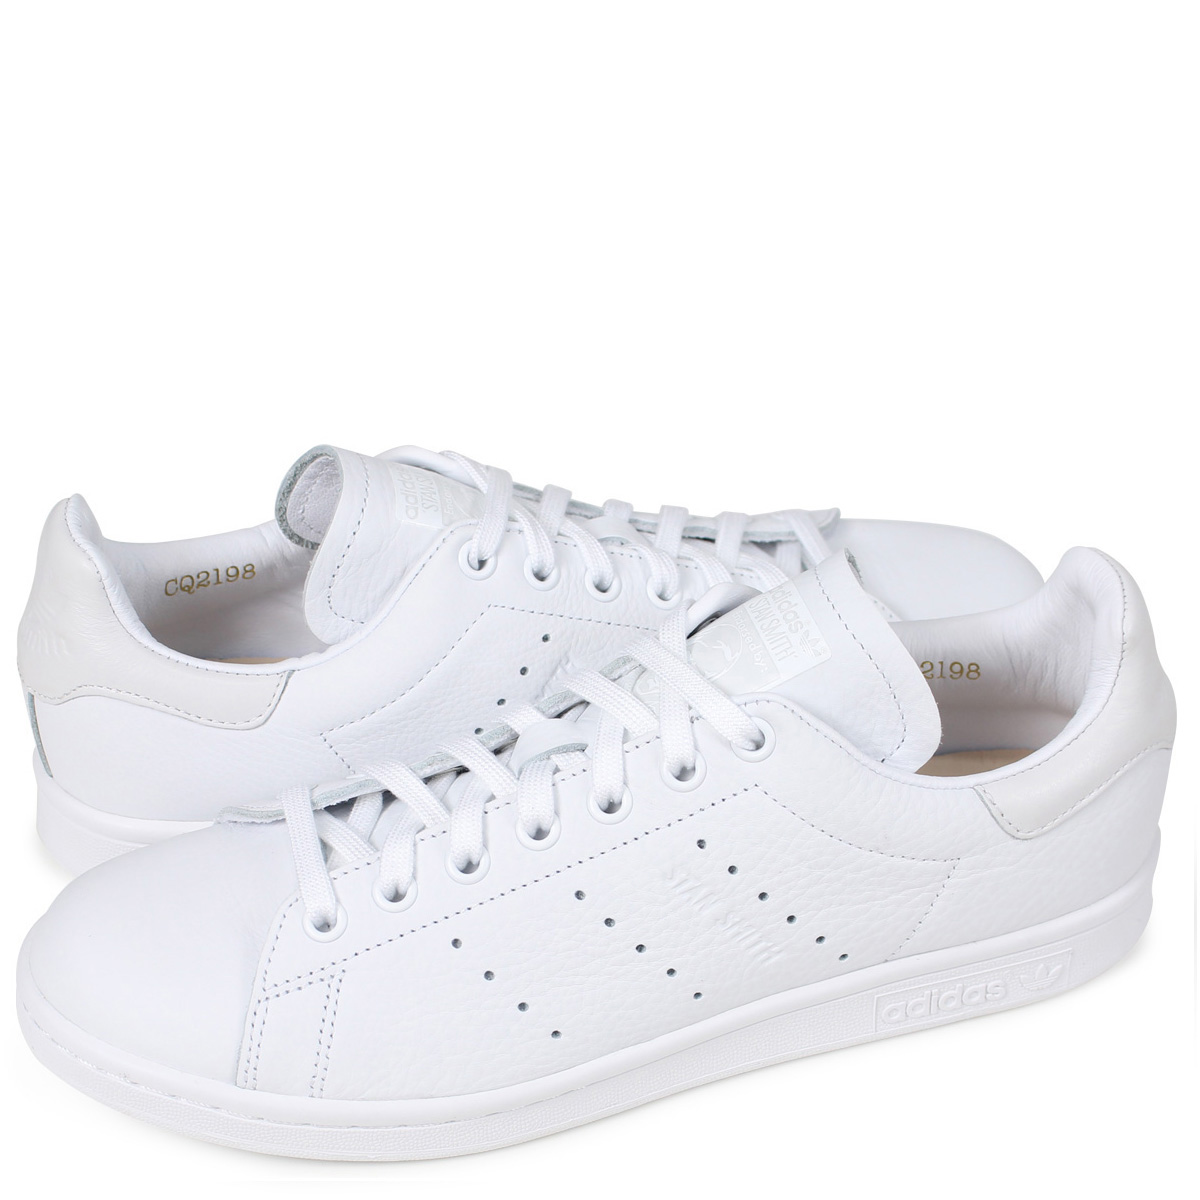 sneakers for cheap 70ca8 02a71 Product Information